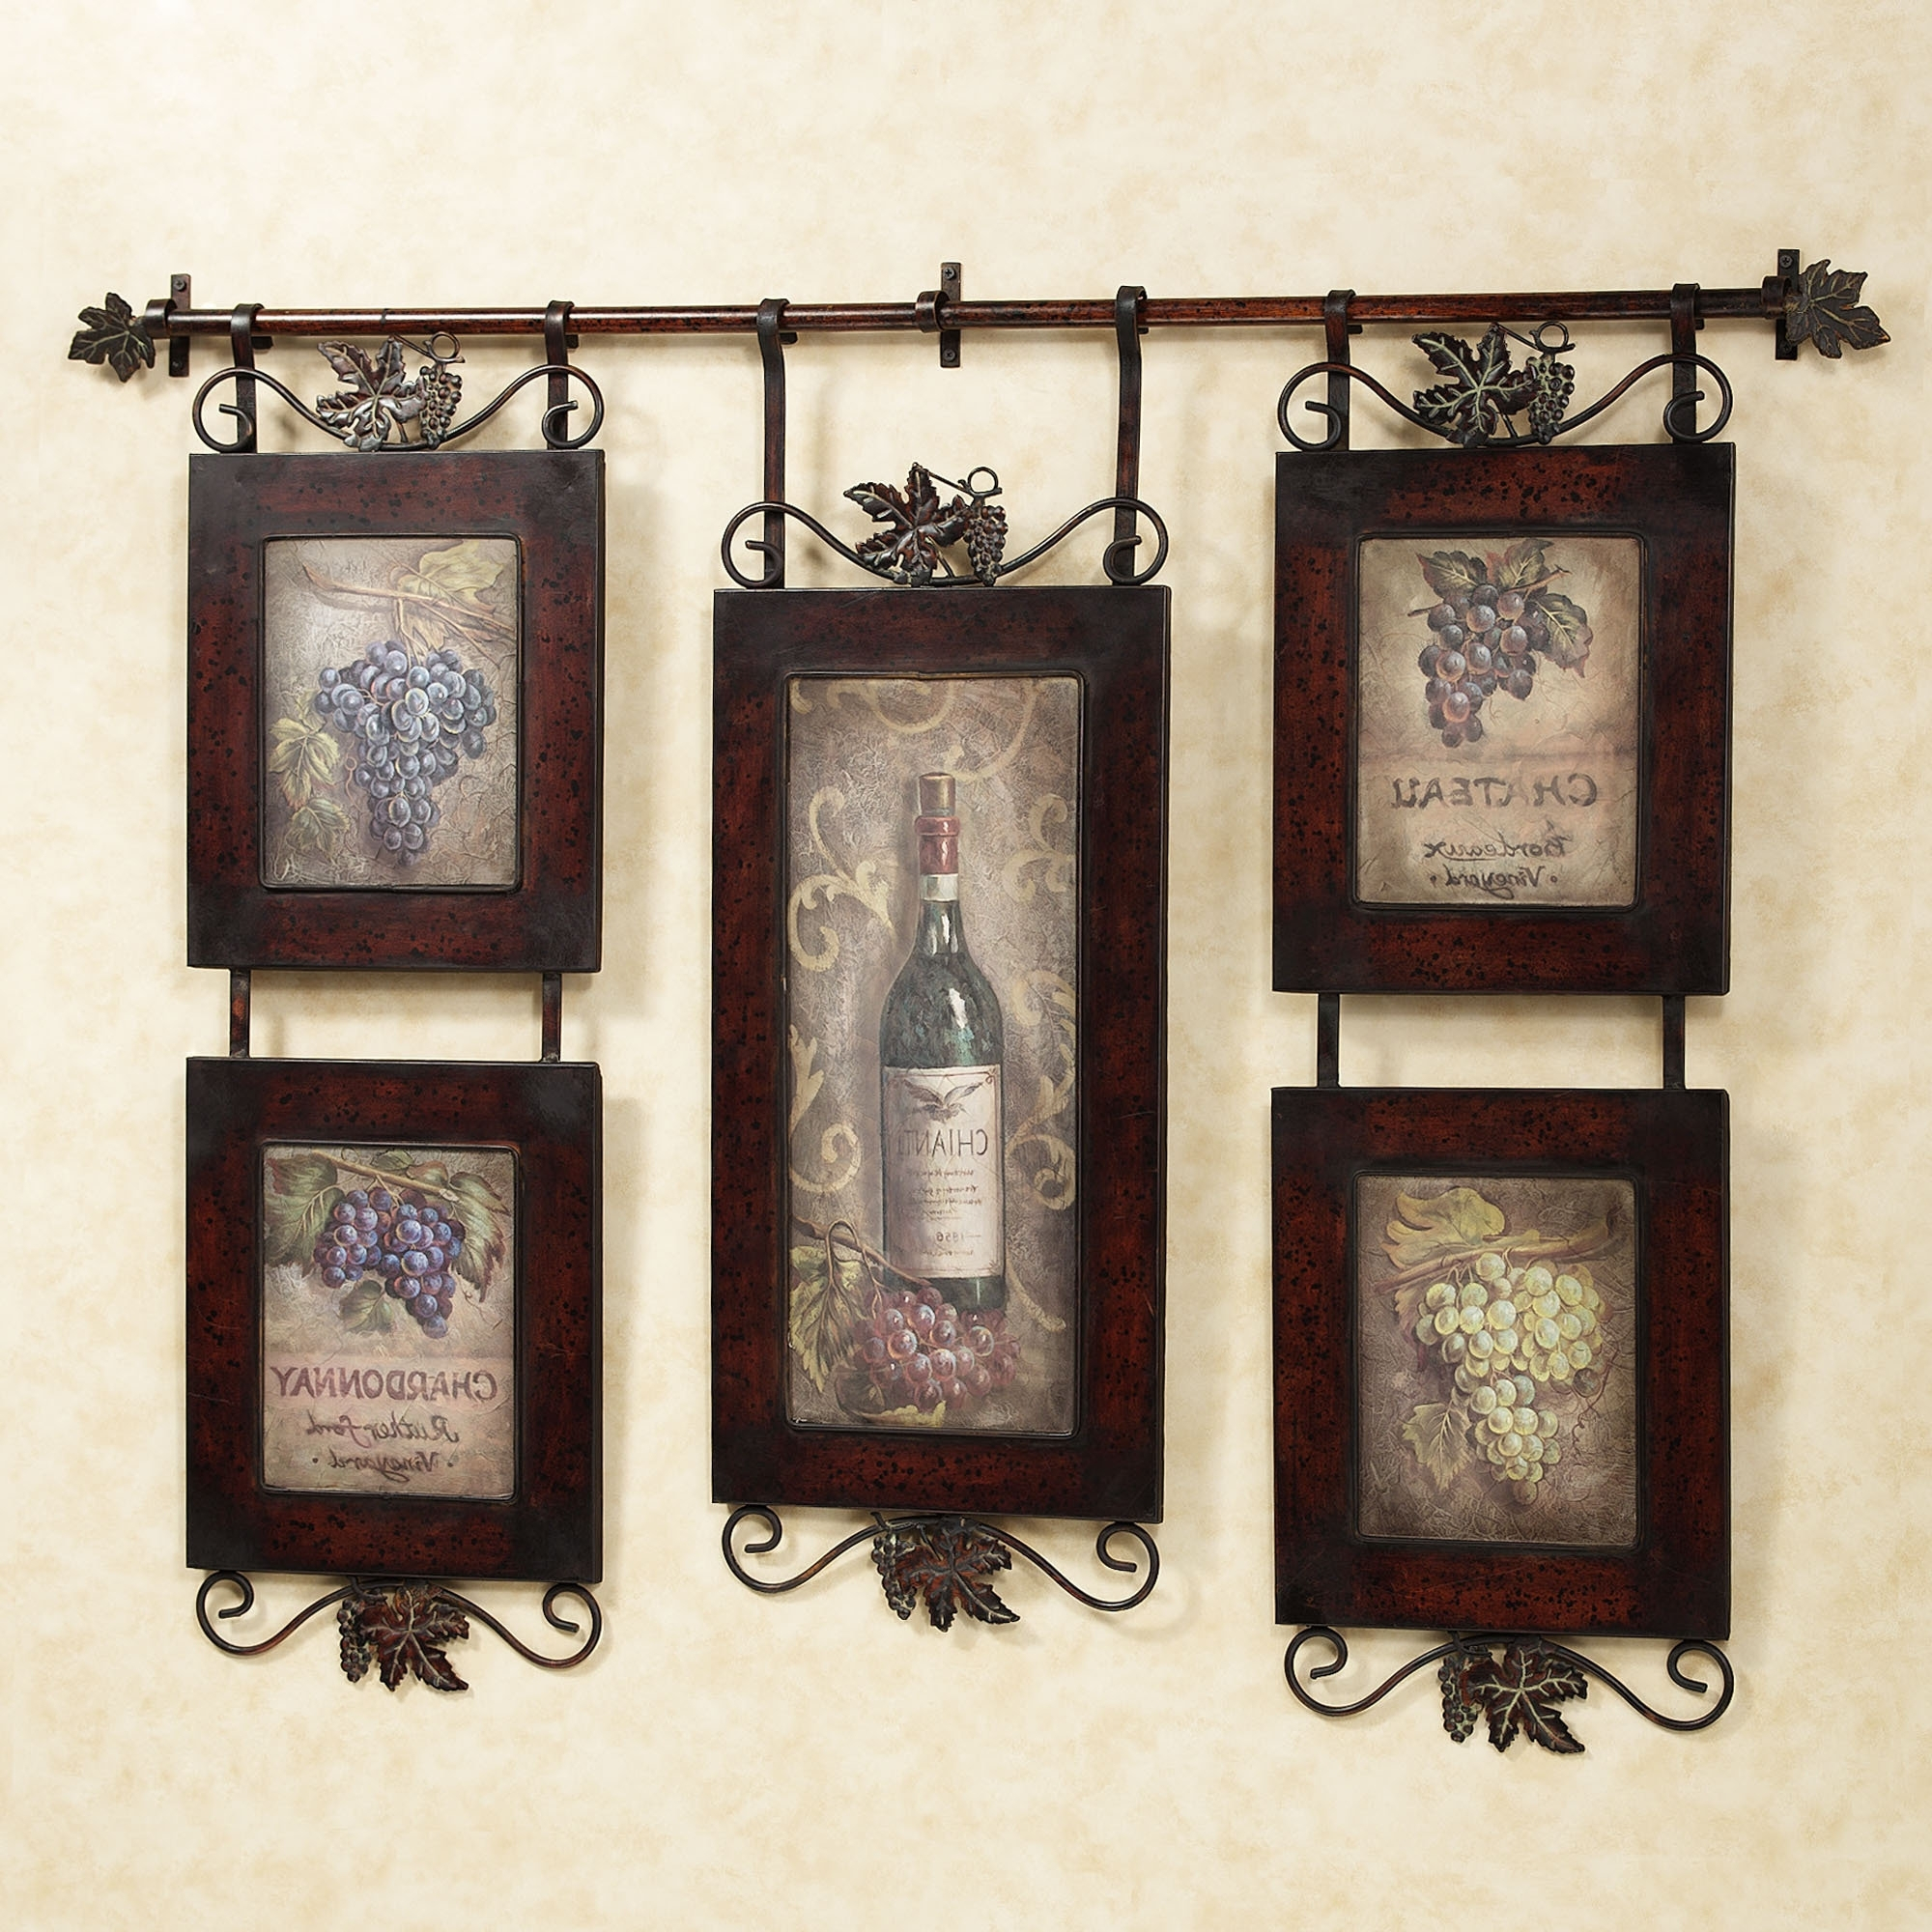 Best And Newest Wrought Iron Wall Decor Ideas Elegant Faux Wrought Iron Wall Decor Regarding Faux Wrought Iron Wall Decors (View 2 of 15)